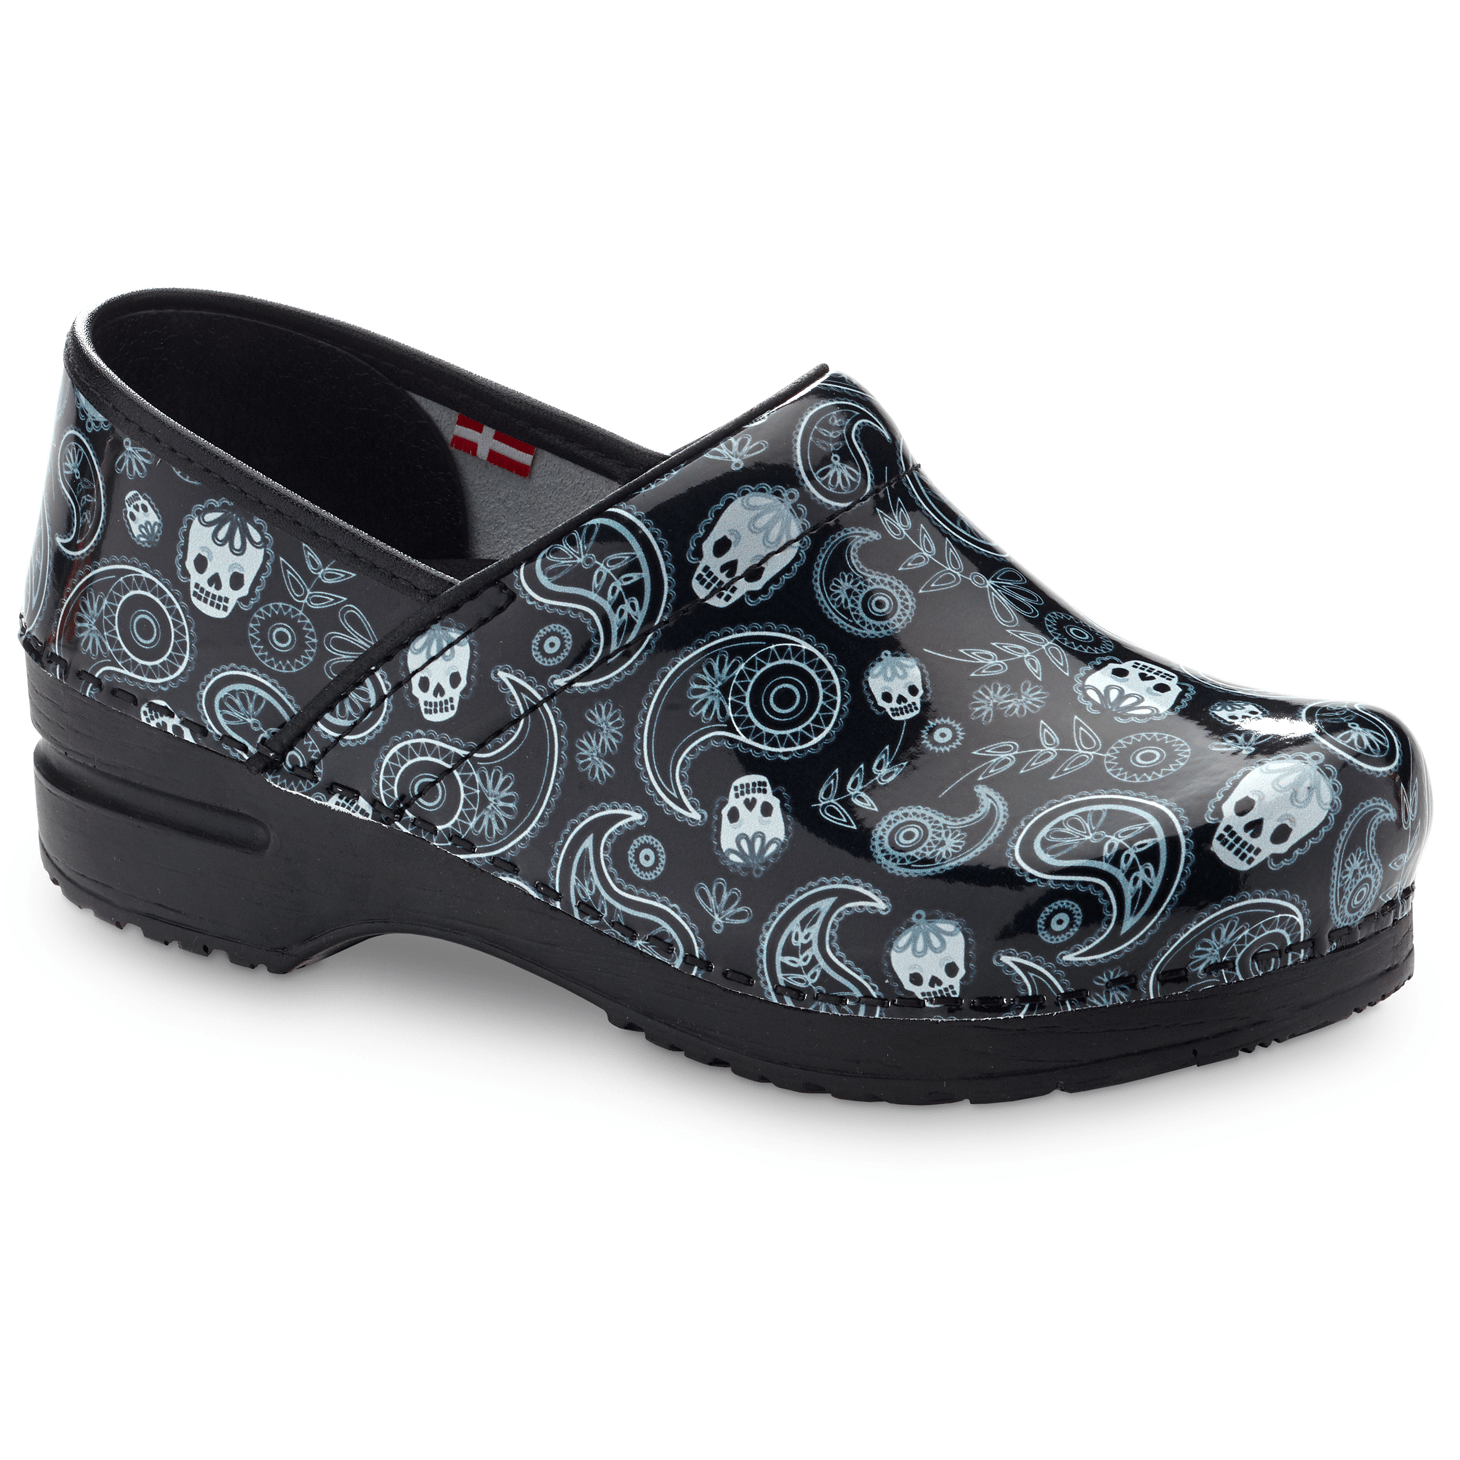 Sanita Alton Women's Closed Back Clog